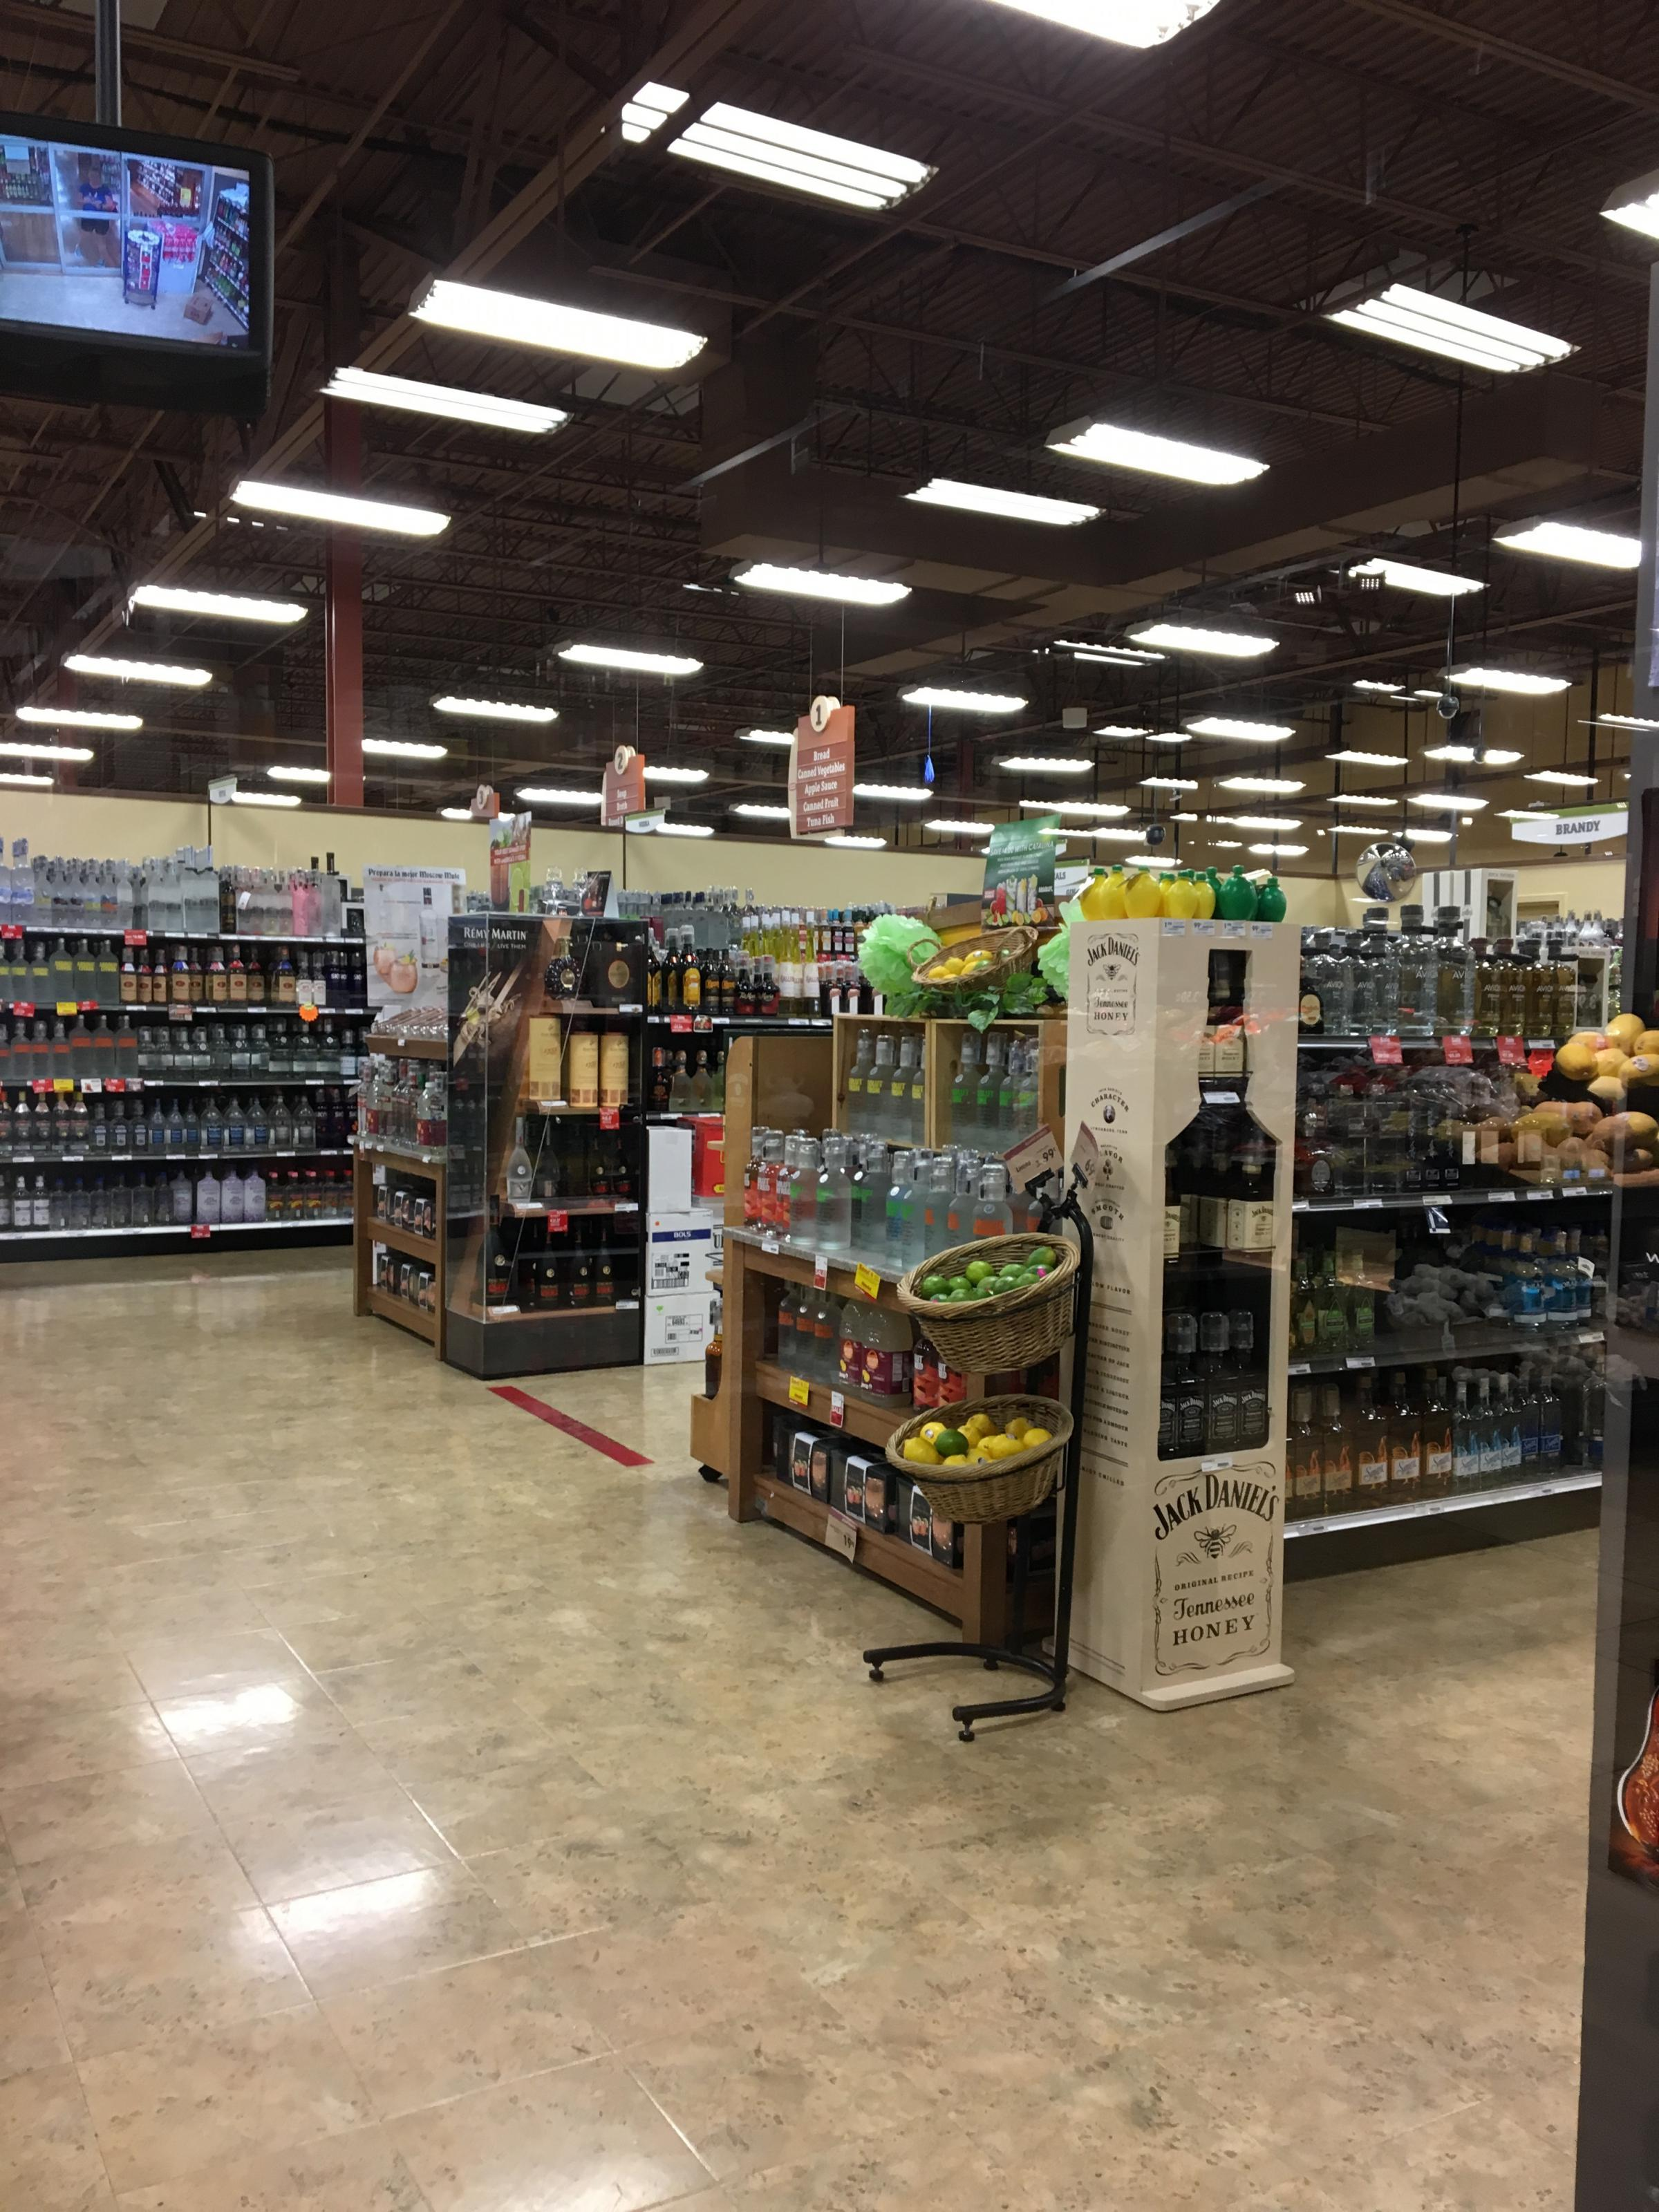 Stores Bureau Last Call For Some Alcohol In Ohio Liquor Stores The Statehouse